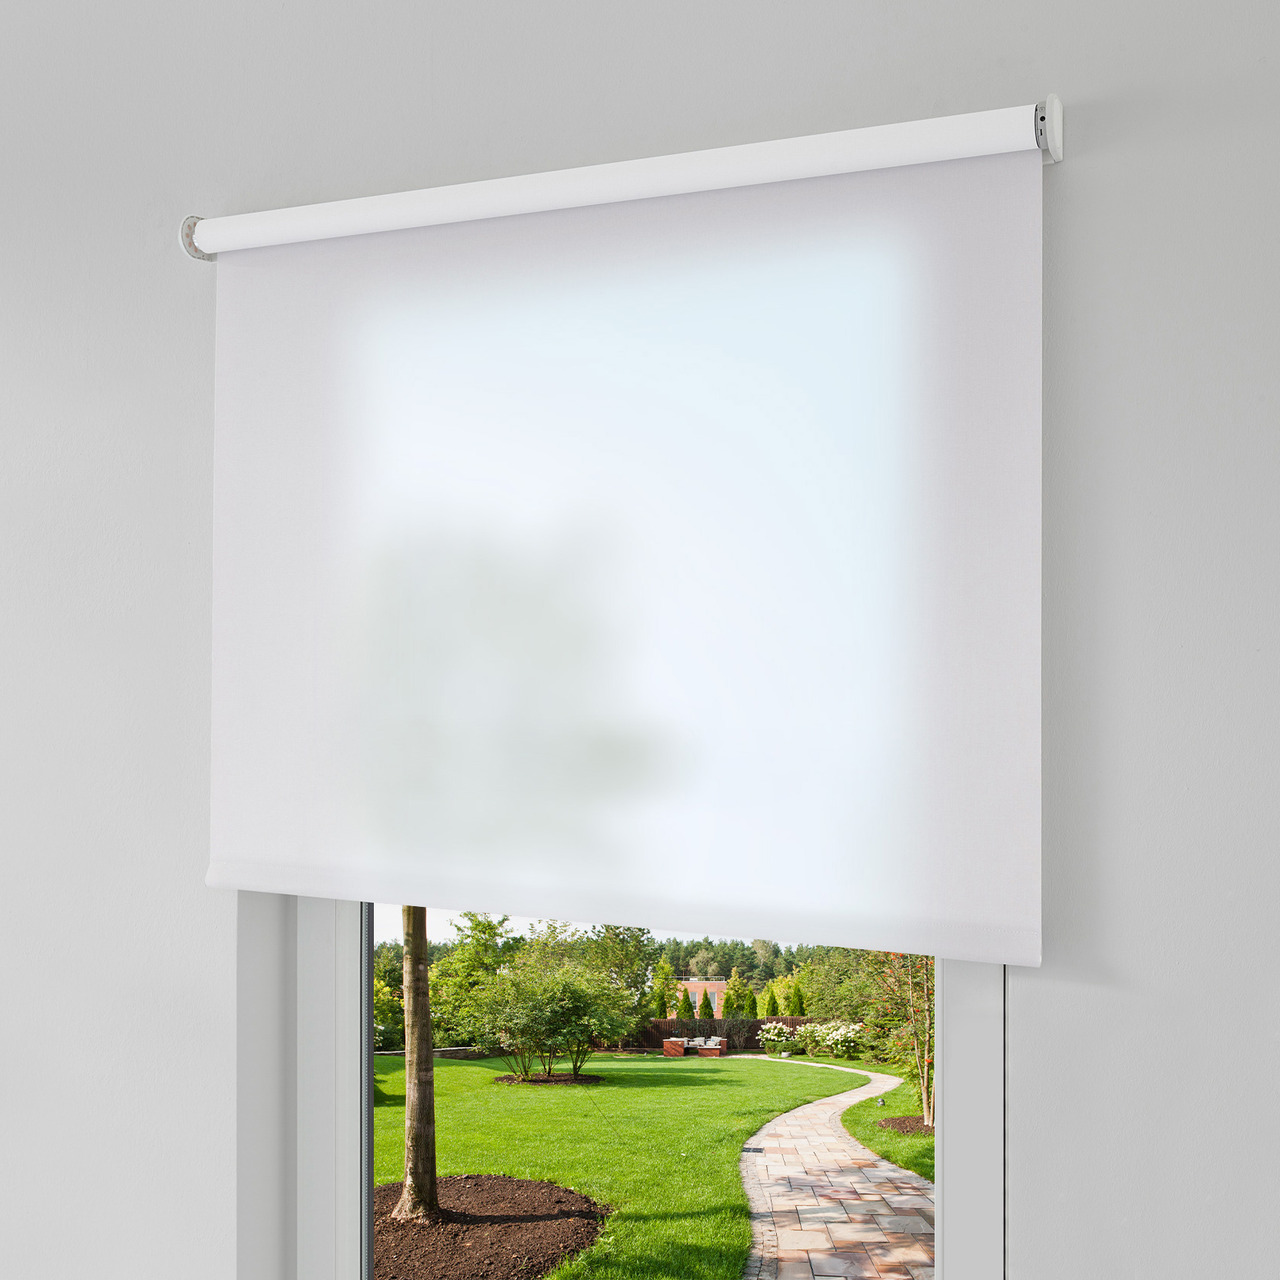 Erfal Smartcontrol Rollo by Homematic IP- 230 x 140 cm (H x B)- halbtransparent tageslicht weiund-223